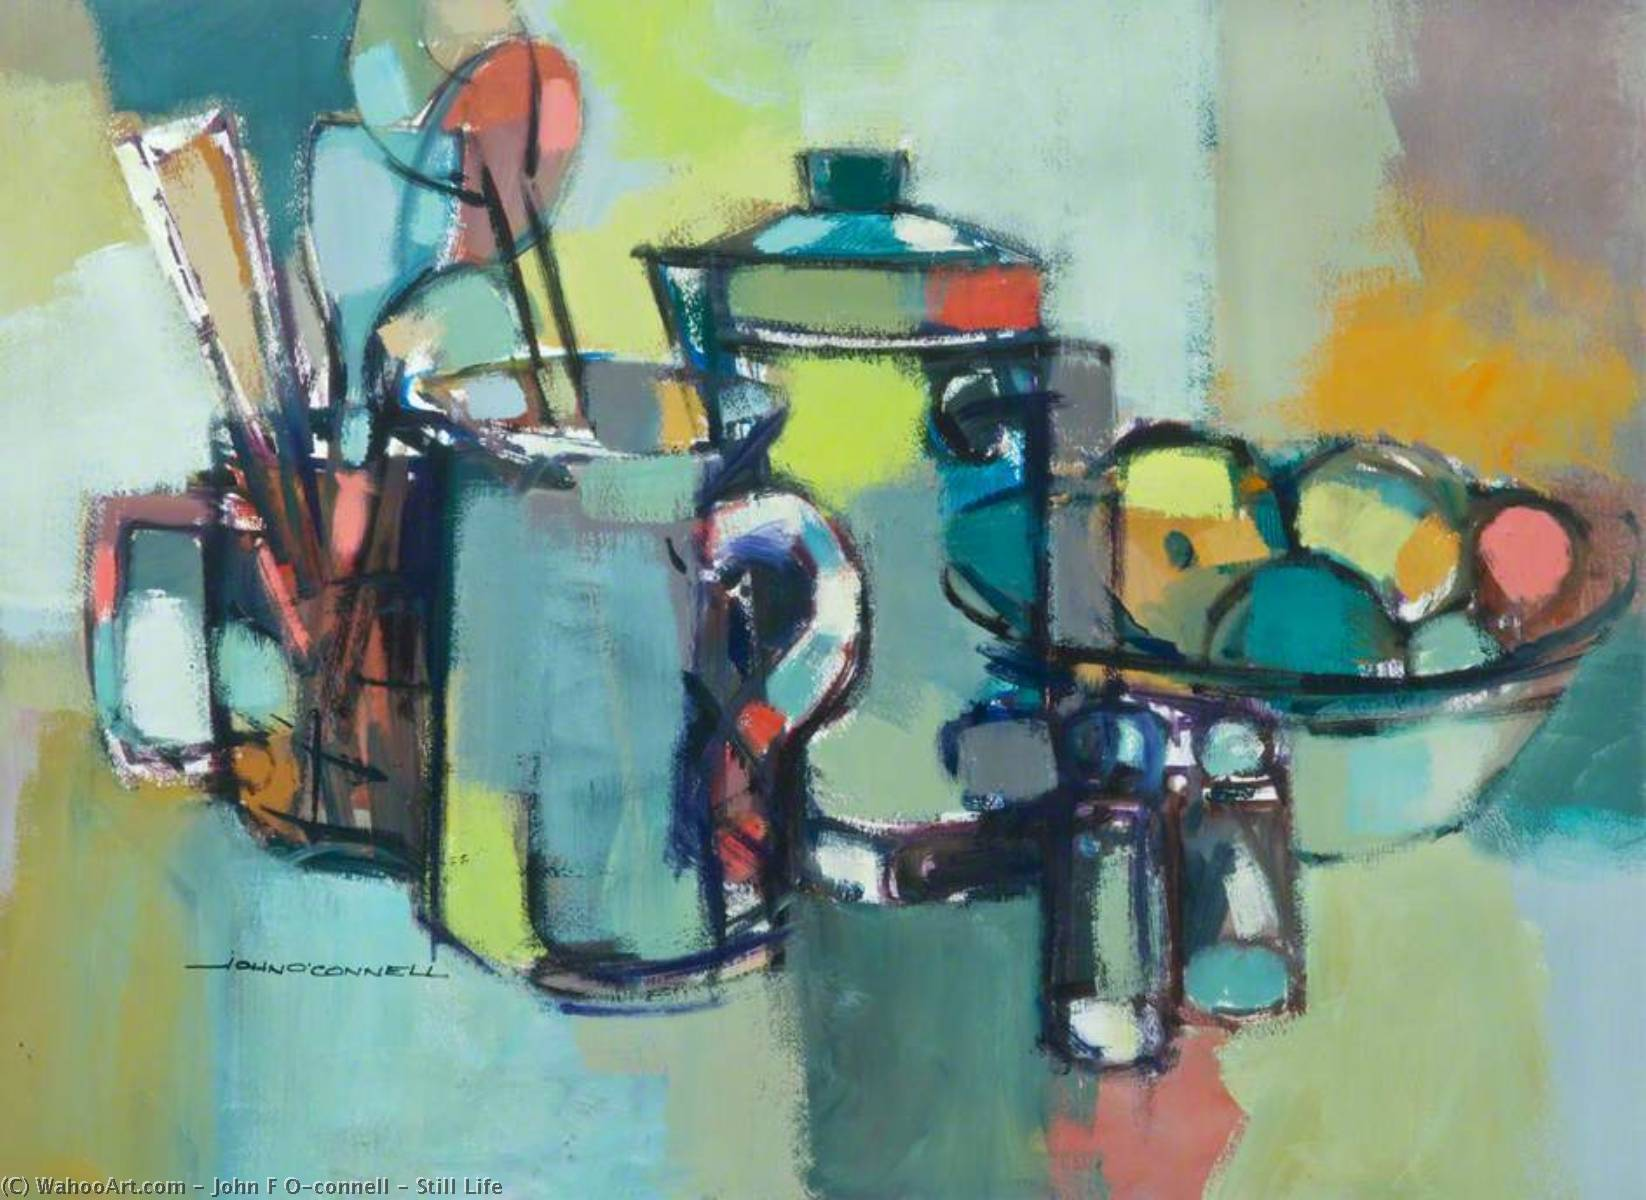 Still Life by John F O'connell | Museum Art Reproductions John F O'connell | WahooArt.com